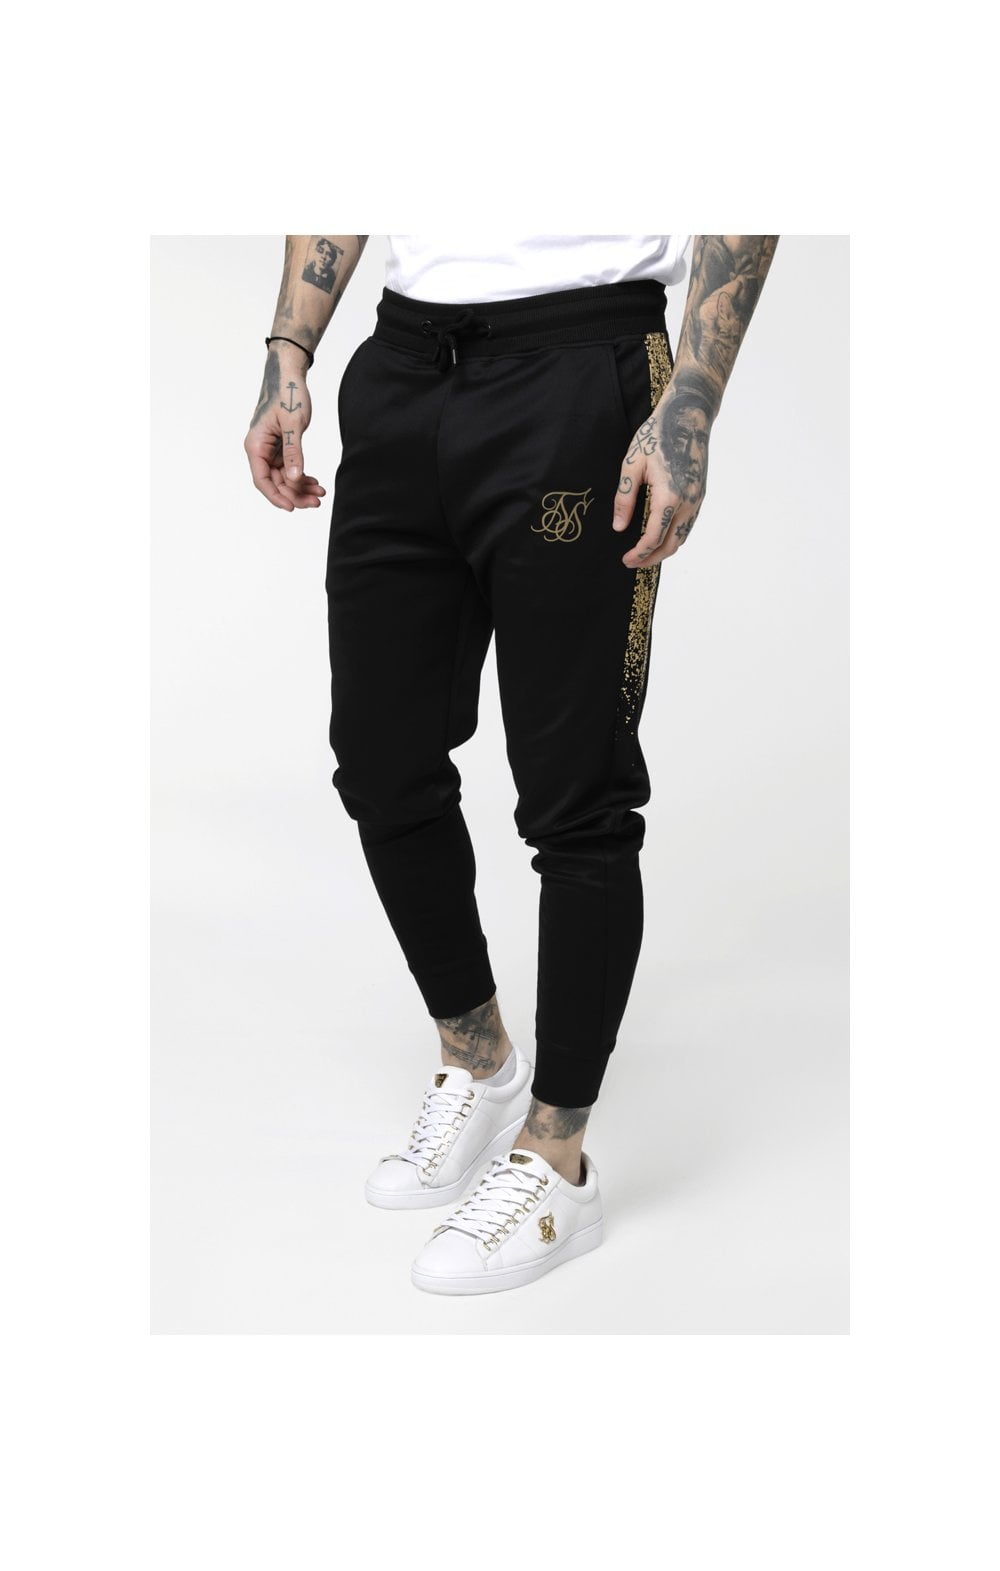 SikSilk Cuffed Cropped Foil Fade Panel Pants - Black & Gold (2)